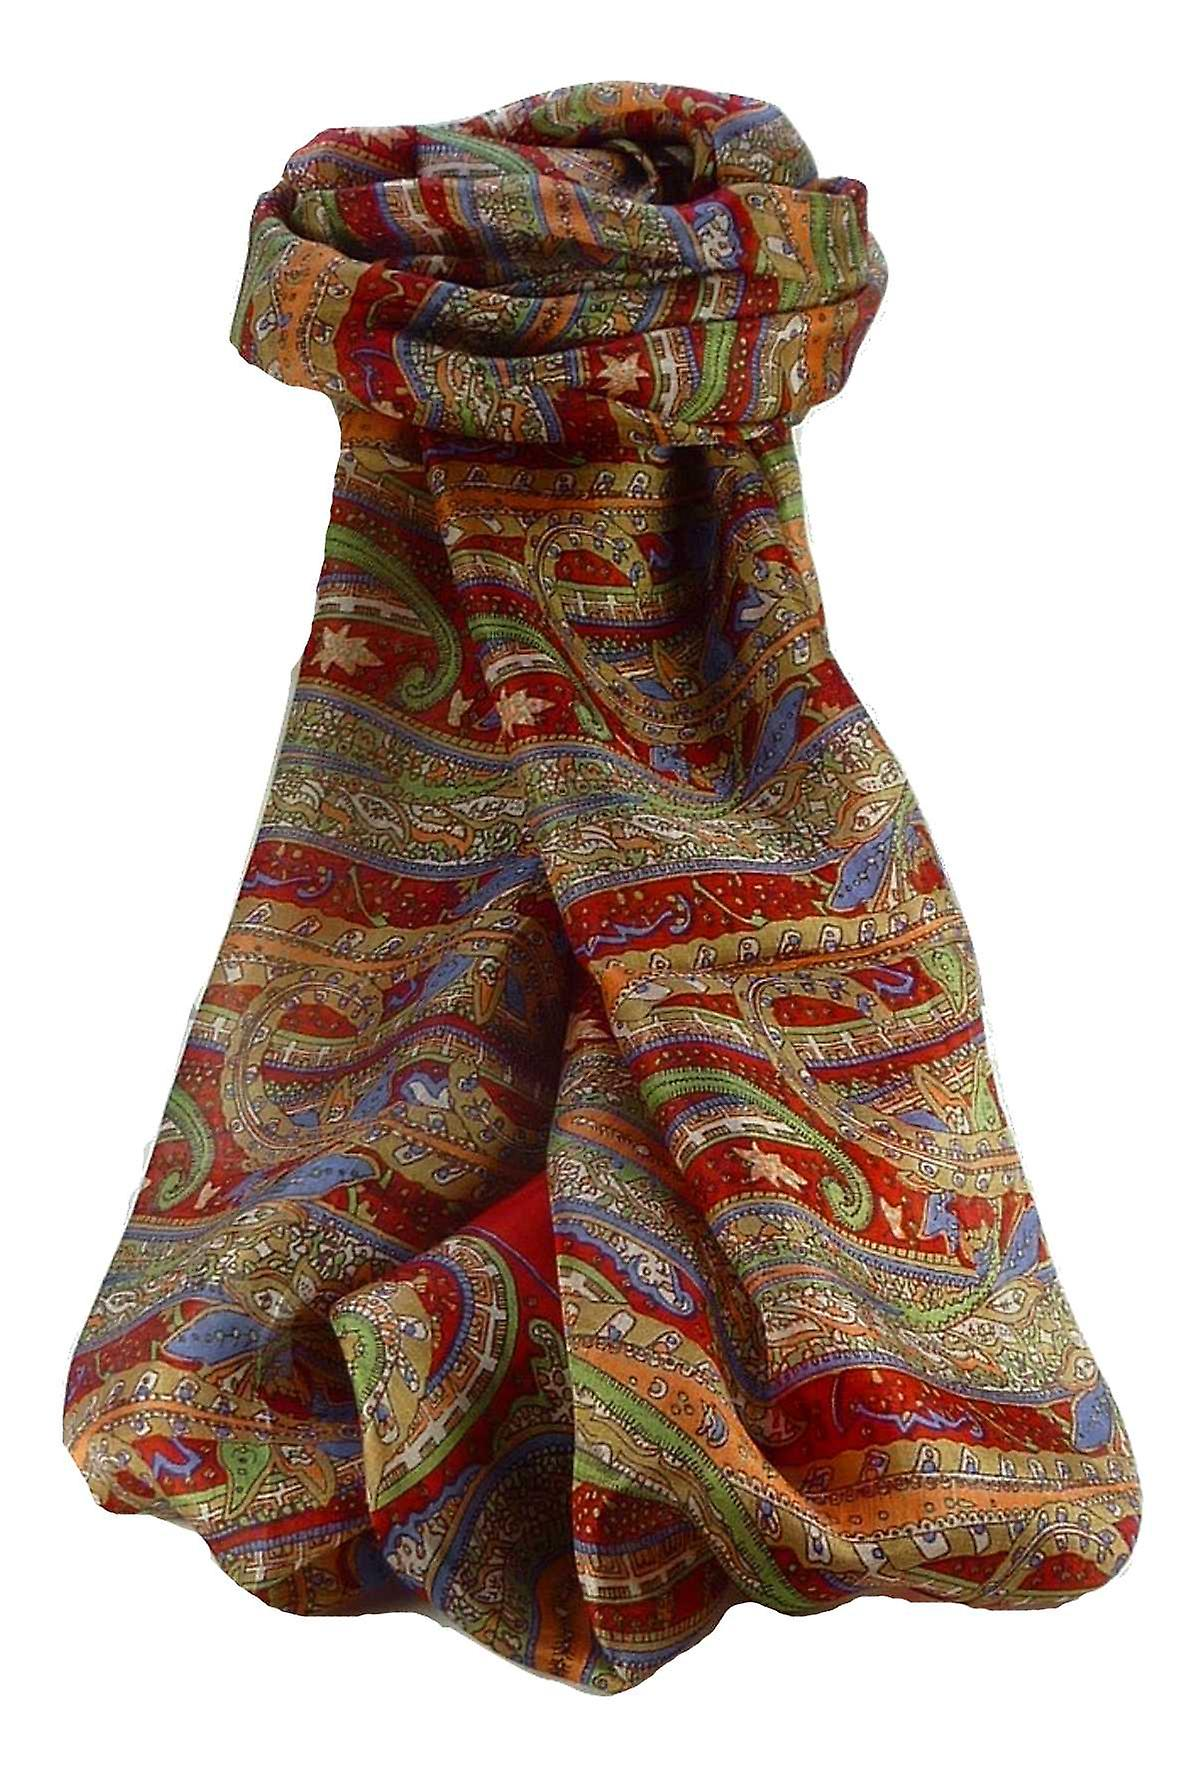 Mulberry Silk Traditional Long Scarf Gosthani Scarlet by Pashmina & Silk